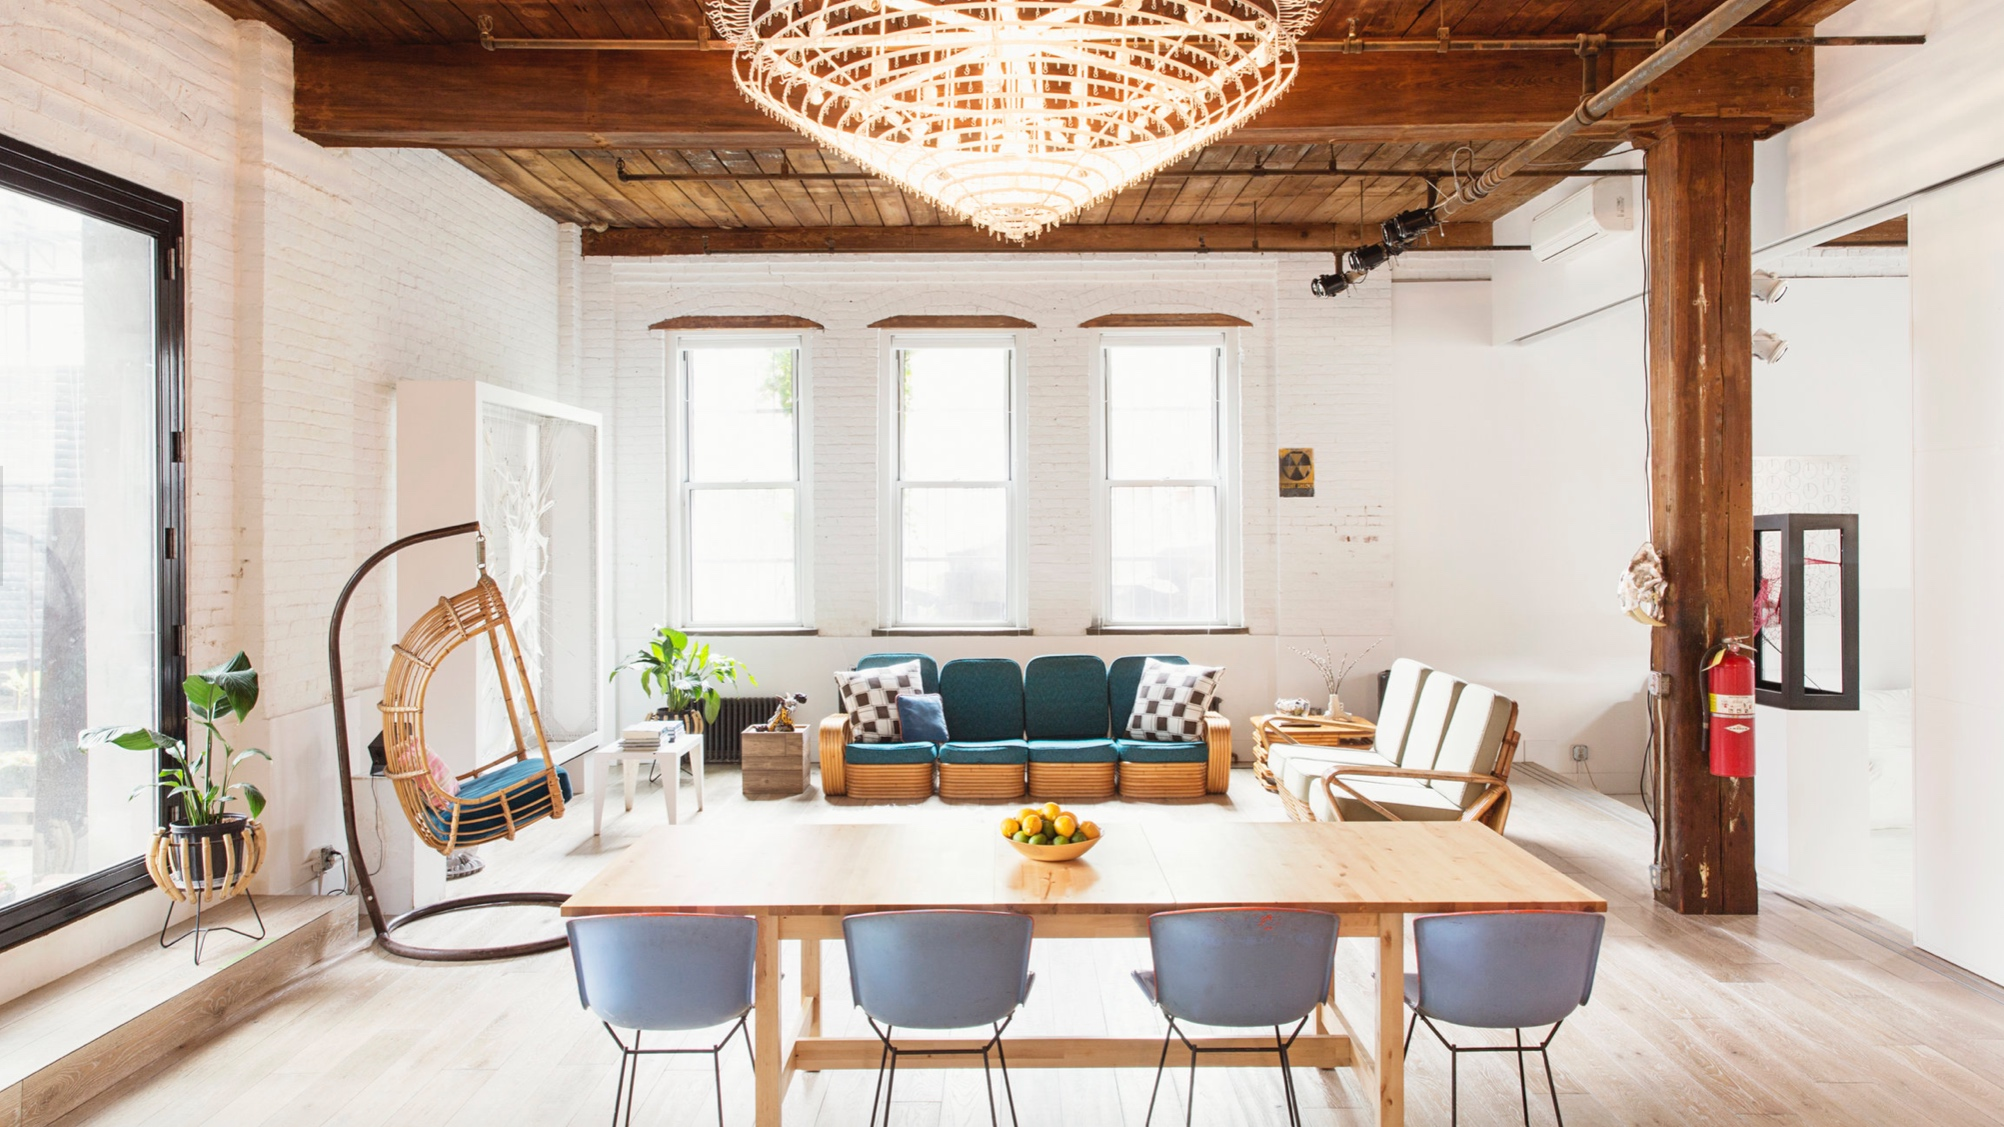 mydomaine - Interior Designers Share the Trick to Making a Space Look Instantly Cooler